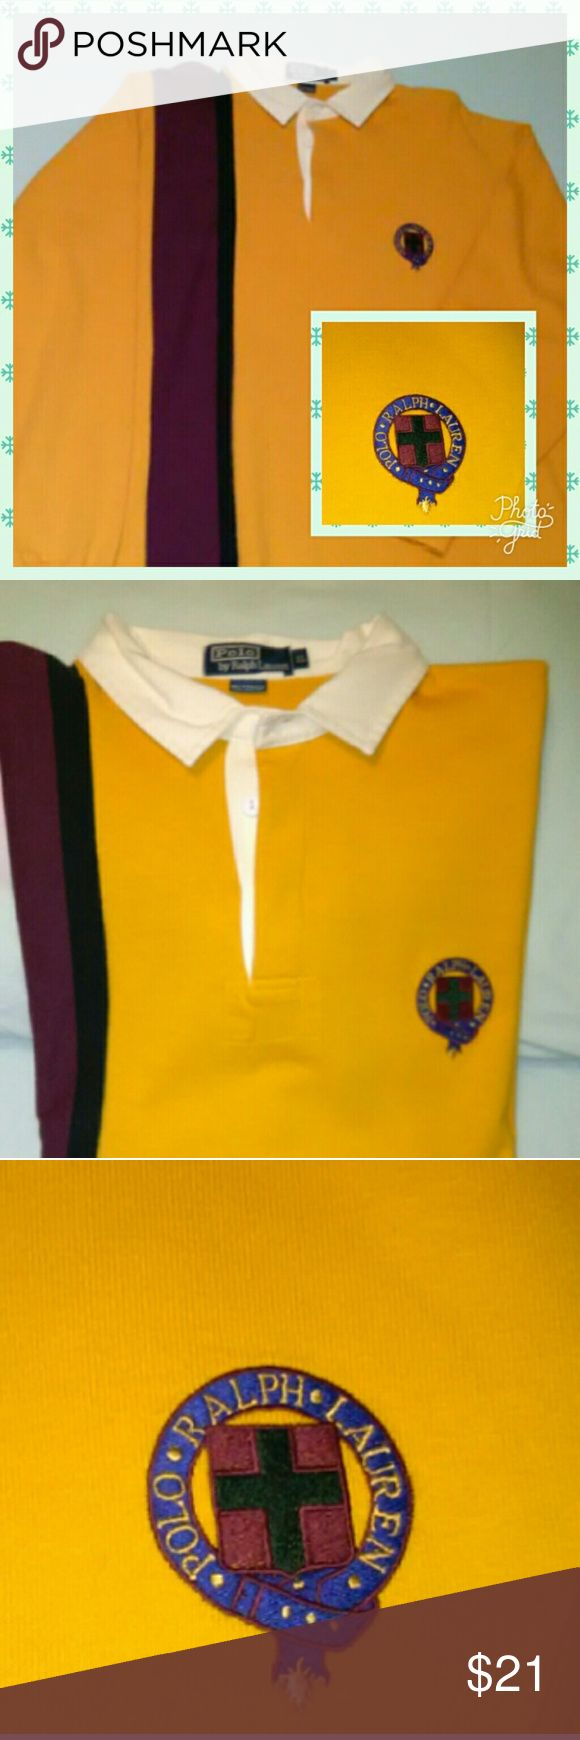 Polo by Ralph Lauren Rugby 🏉 Shirt - Men's XL Men's Rugby Shirt:   √ Polo Ralph Lauren.   √ Size Extra Large (XL).   √ 100% Cotton.   √ Yellow Gold with        Black/Maroon/White Trim.   √ Embroided PRL Emblem    √ Like New - Only worn few times    √ No noticable flaws or defects. Polo by Ralph Lauren Shirts Polos